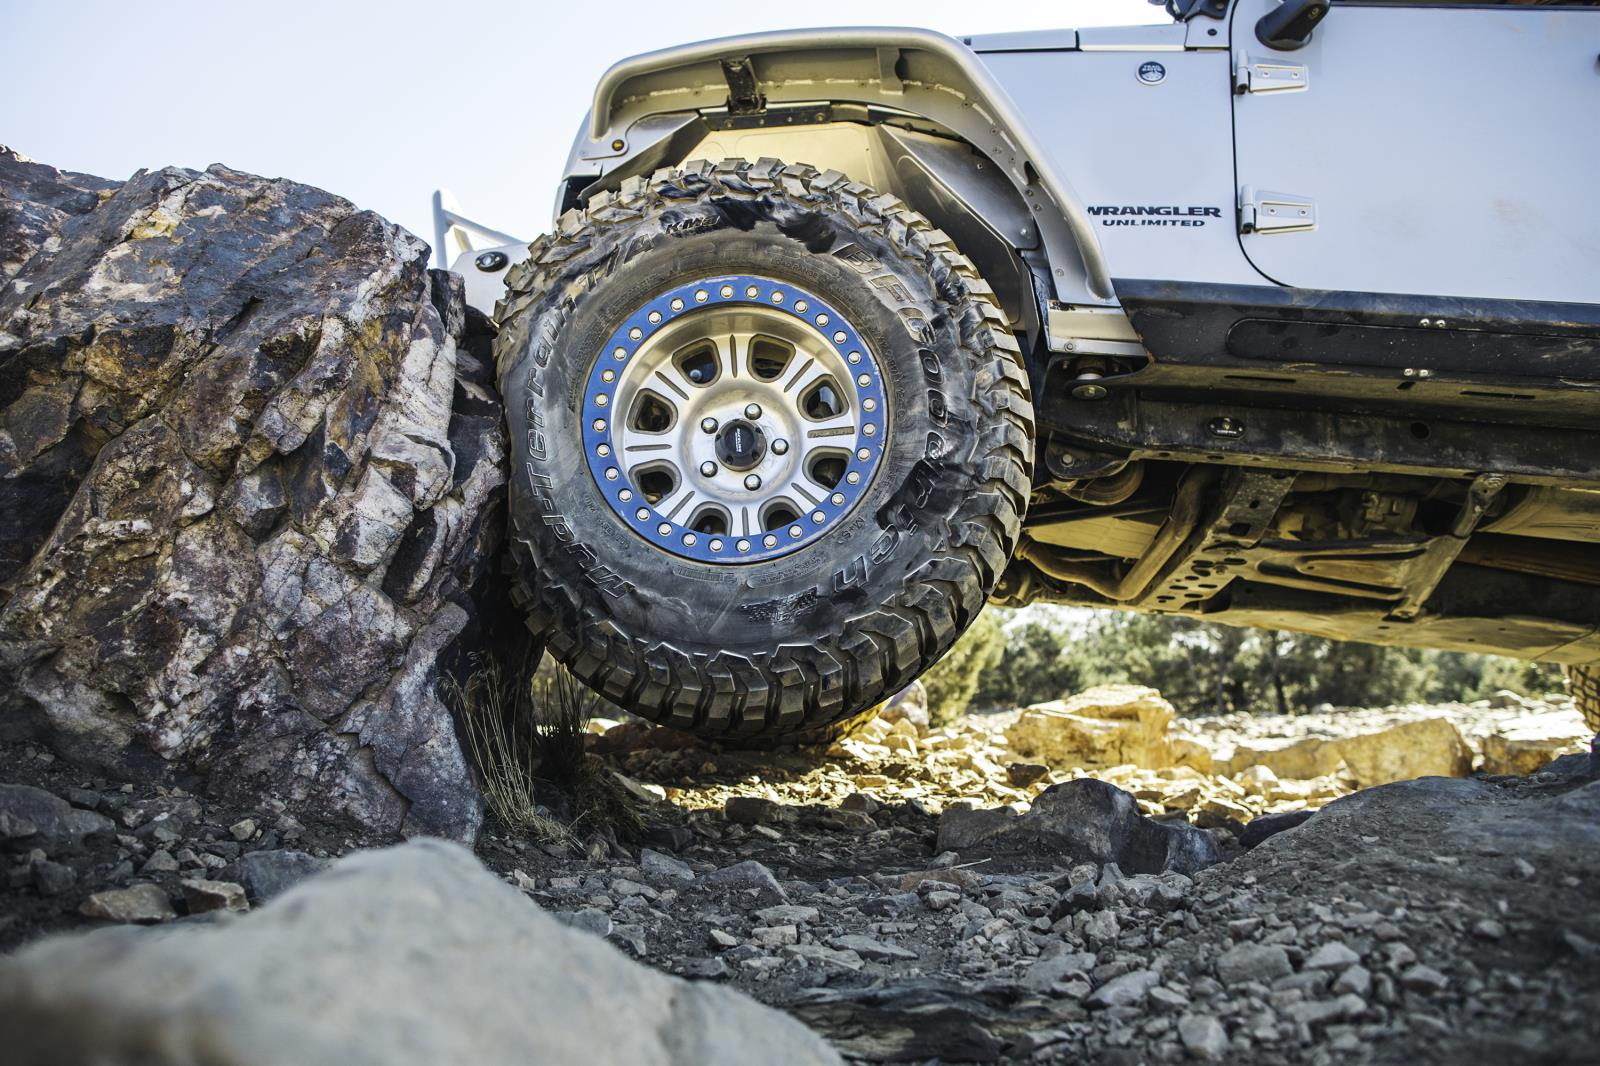 Bf Goodrich Km 3 Release Date >> BFGoodrich Launches KM3 Mud Tire :: BFGoodrich North America Newsroom